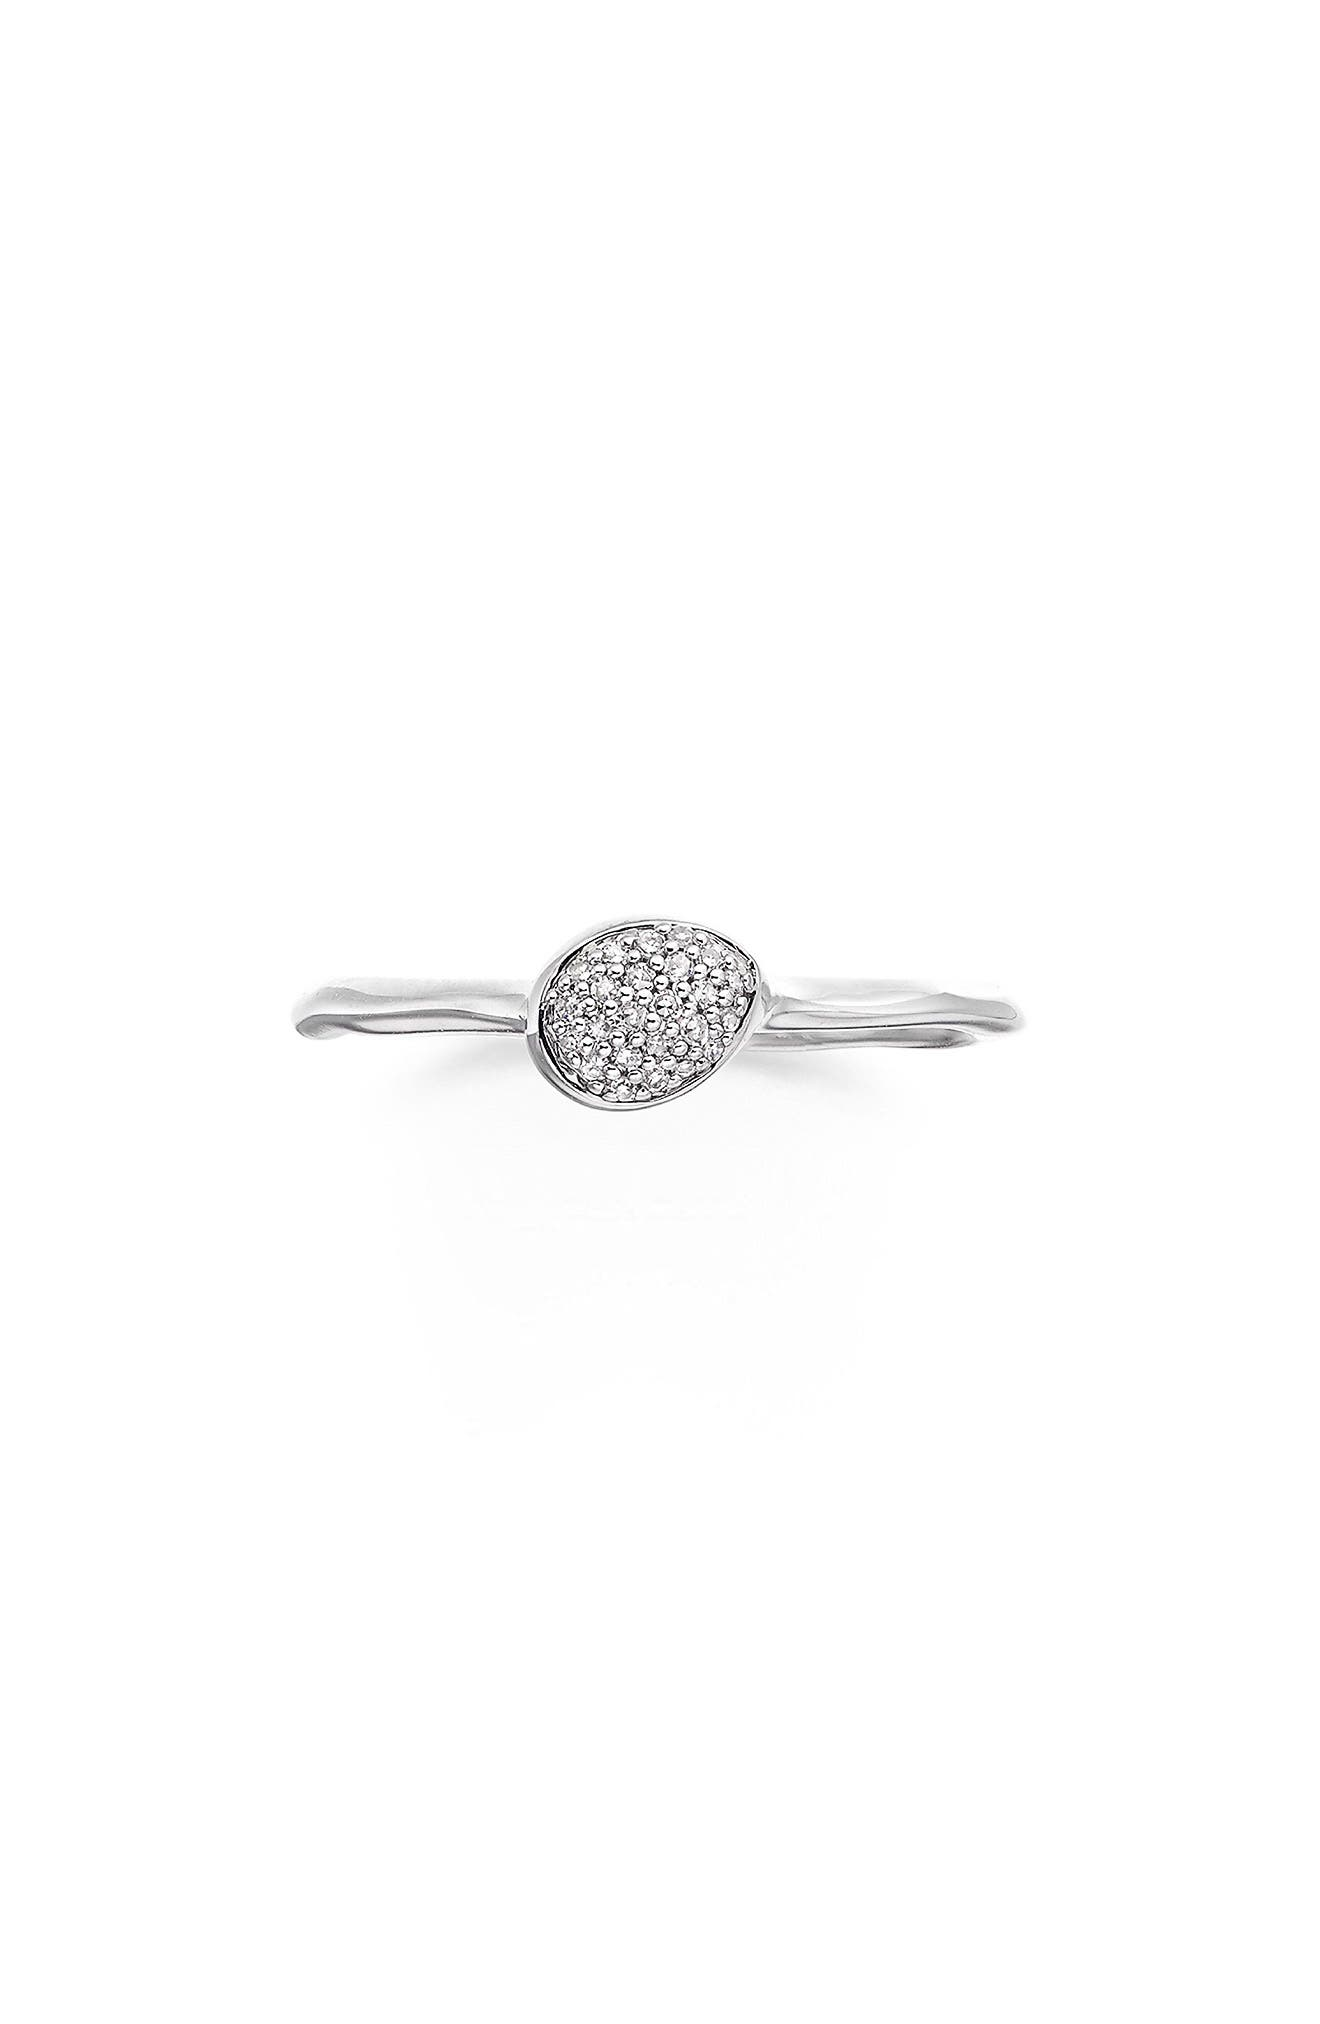 Siren Small Pavé Diamond Stacking Ring,                             Main thumbnail 1, color,                             SILVER/ DIAMOND